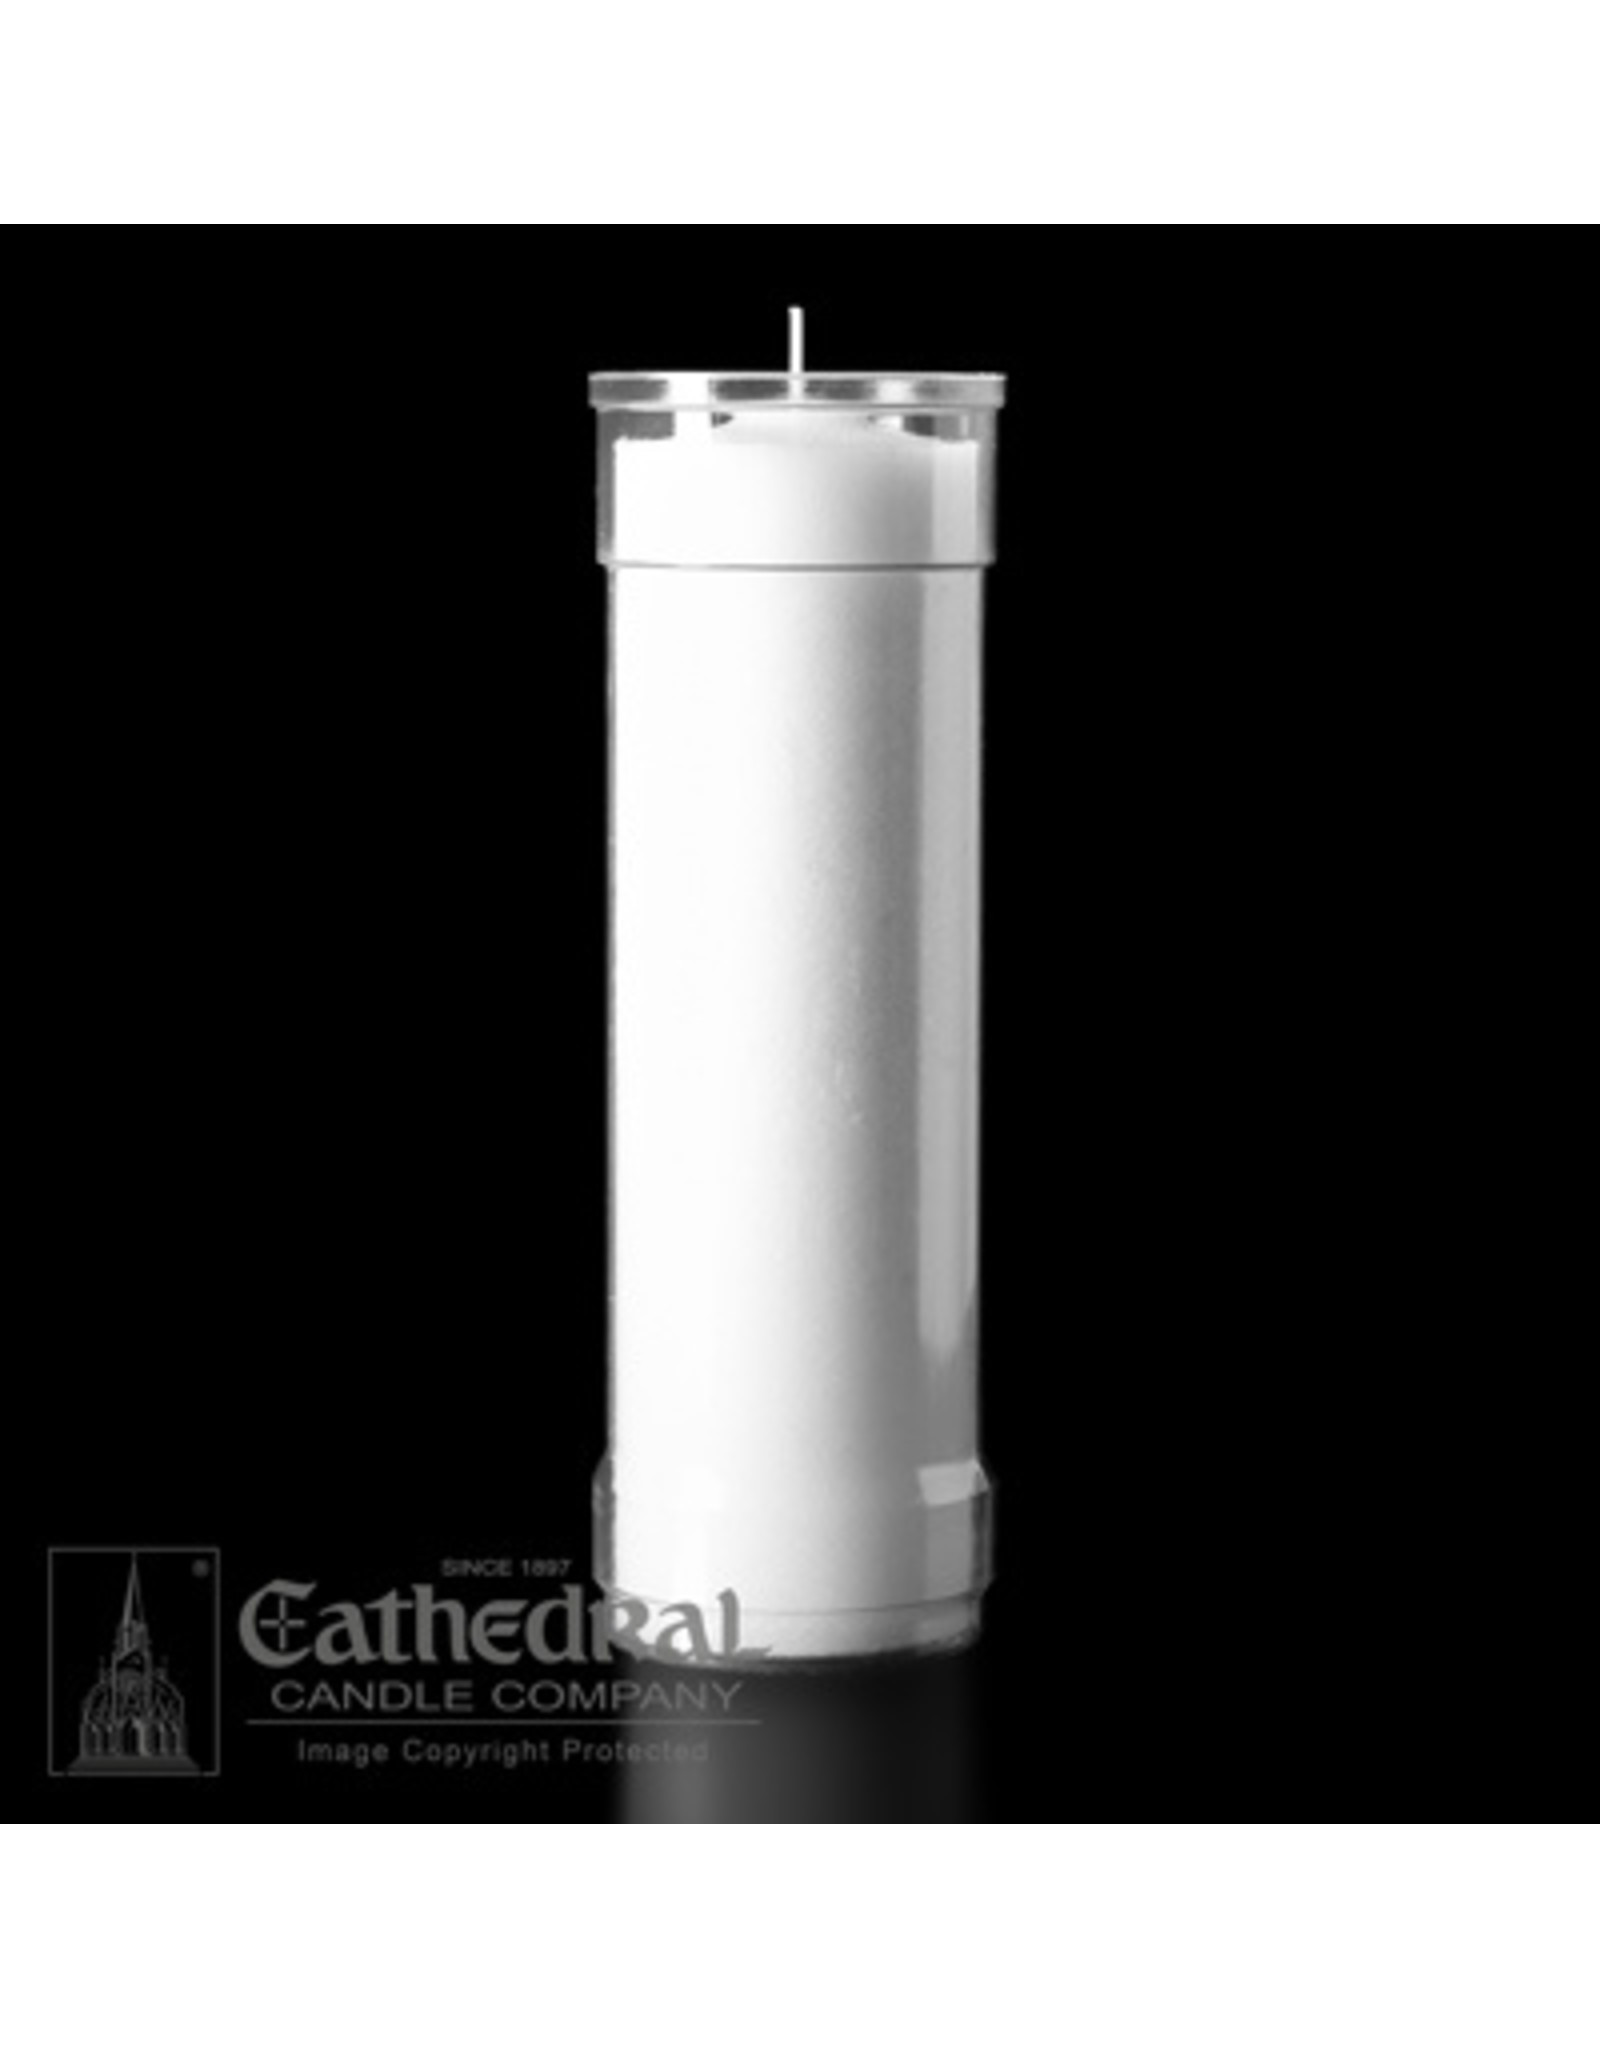 7-Day Plastic Inserta-Lite Candles (24)